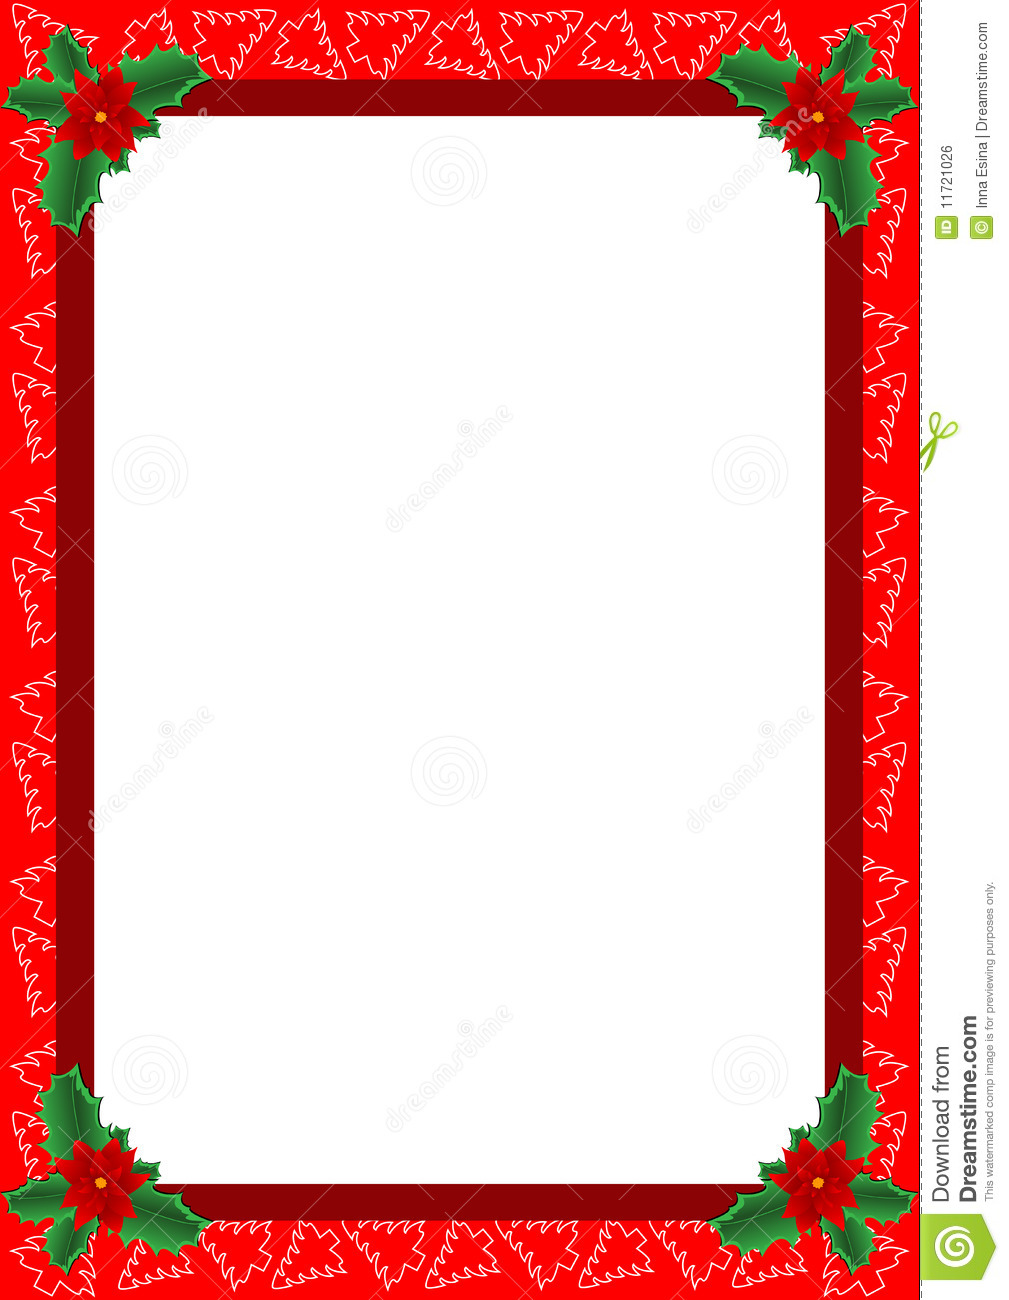 Christmas Frame Royalty Free Stock Image Image 11721026